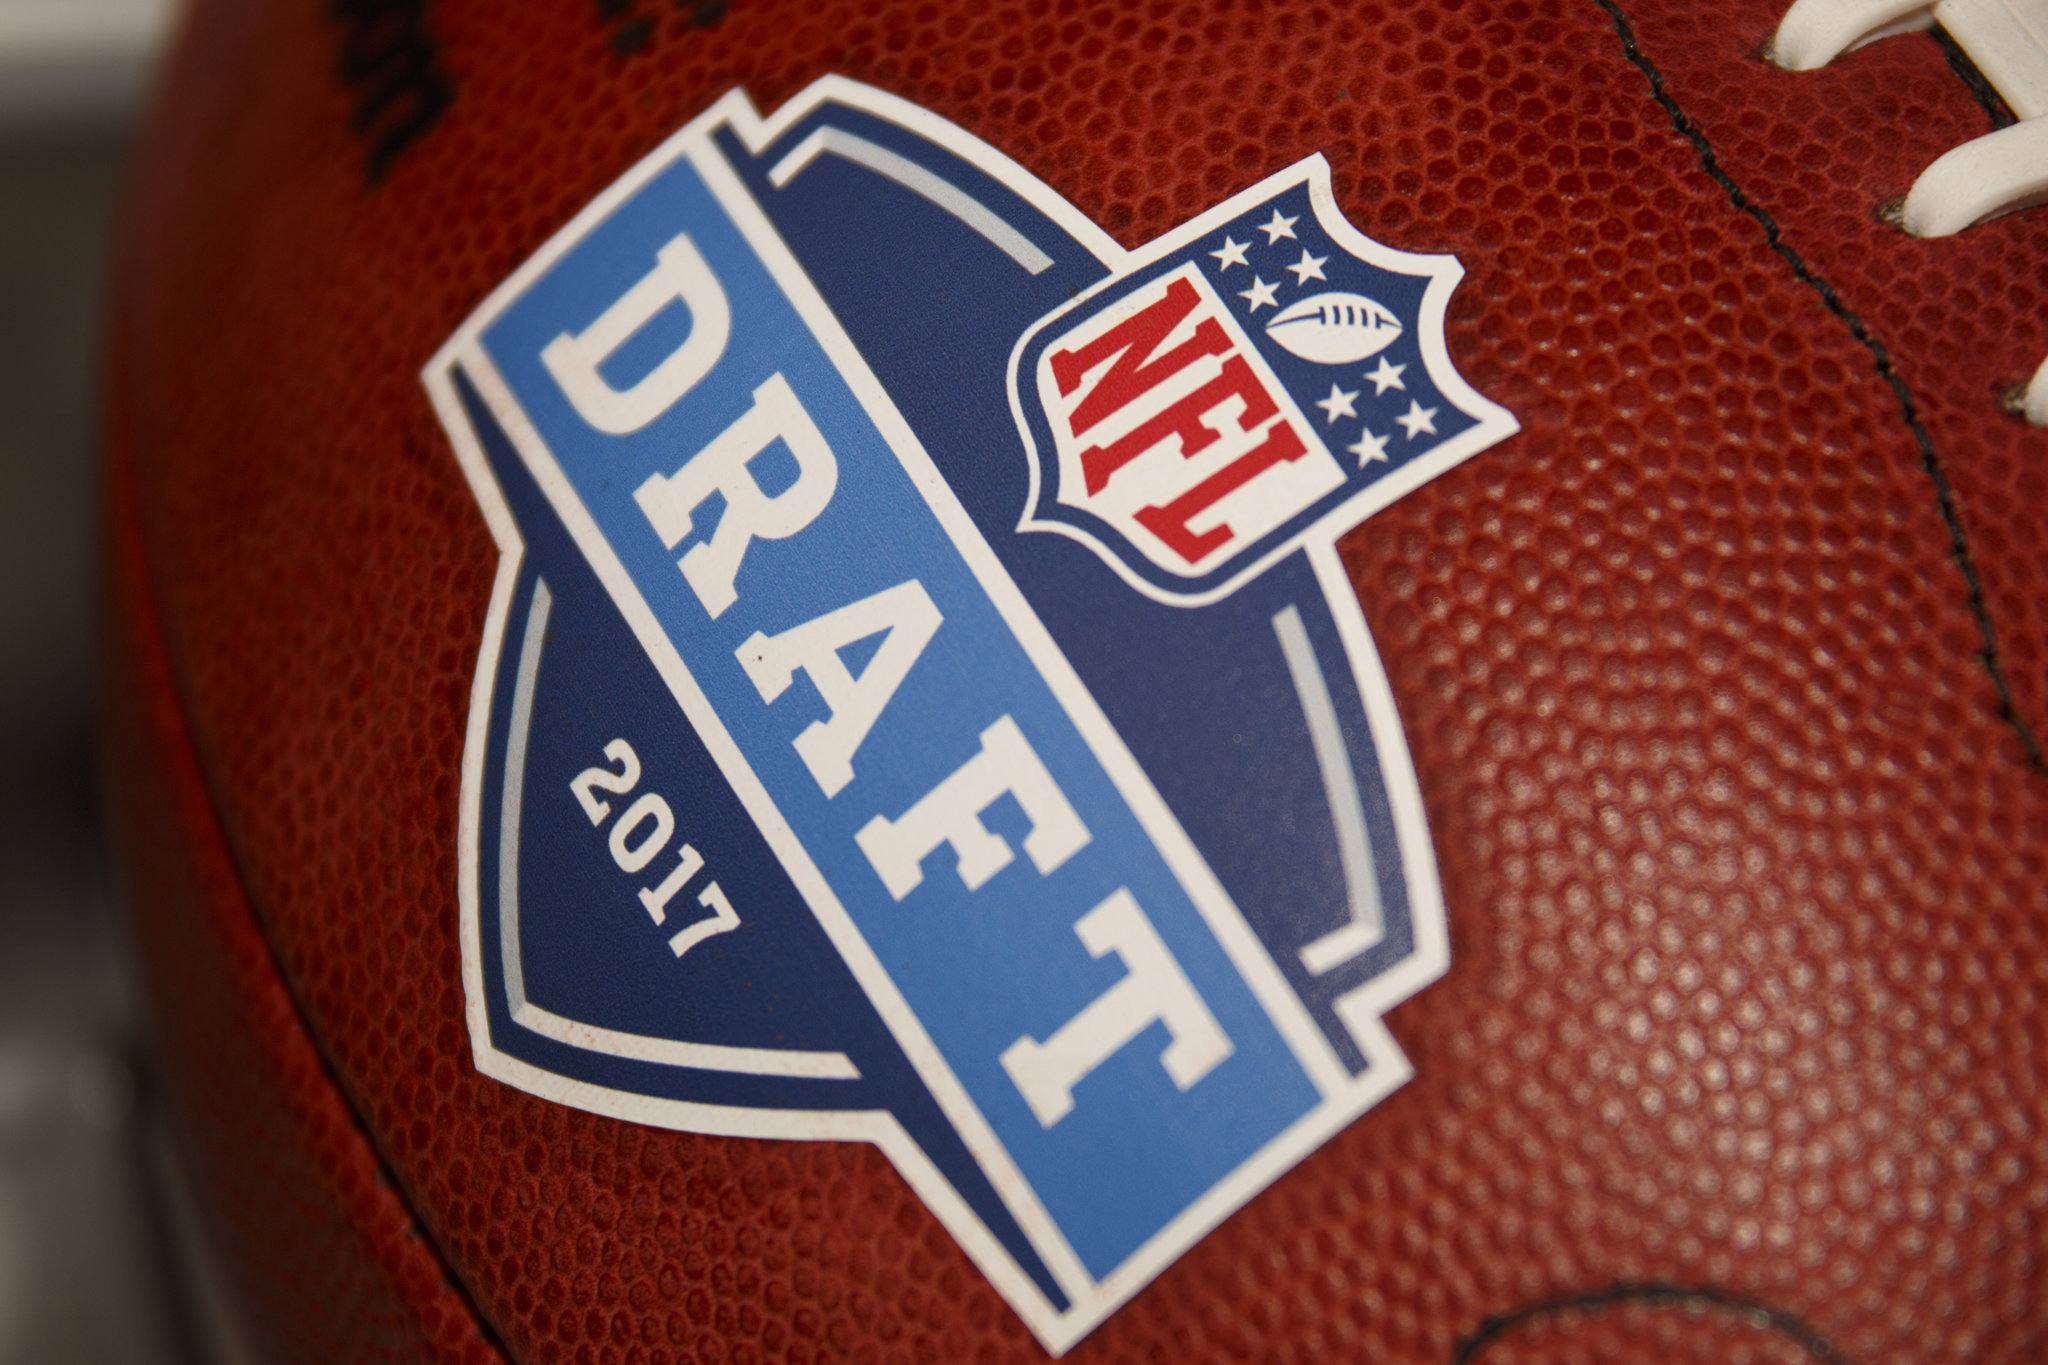 Narrowing Down Dallas's First Pick Candidates